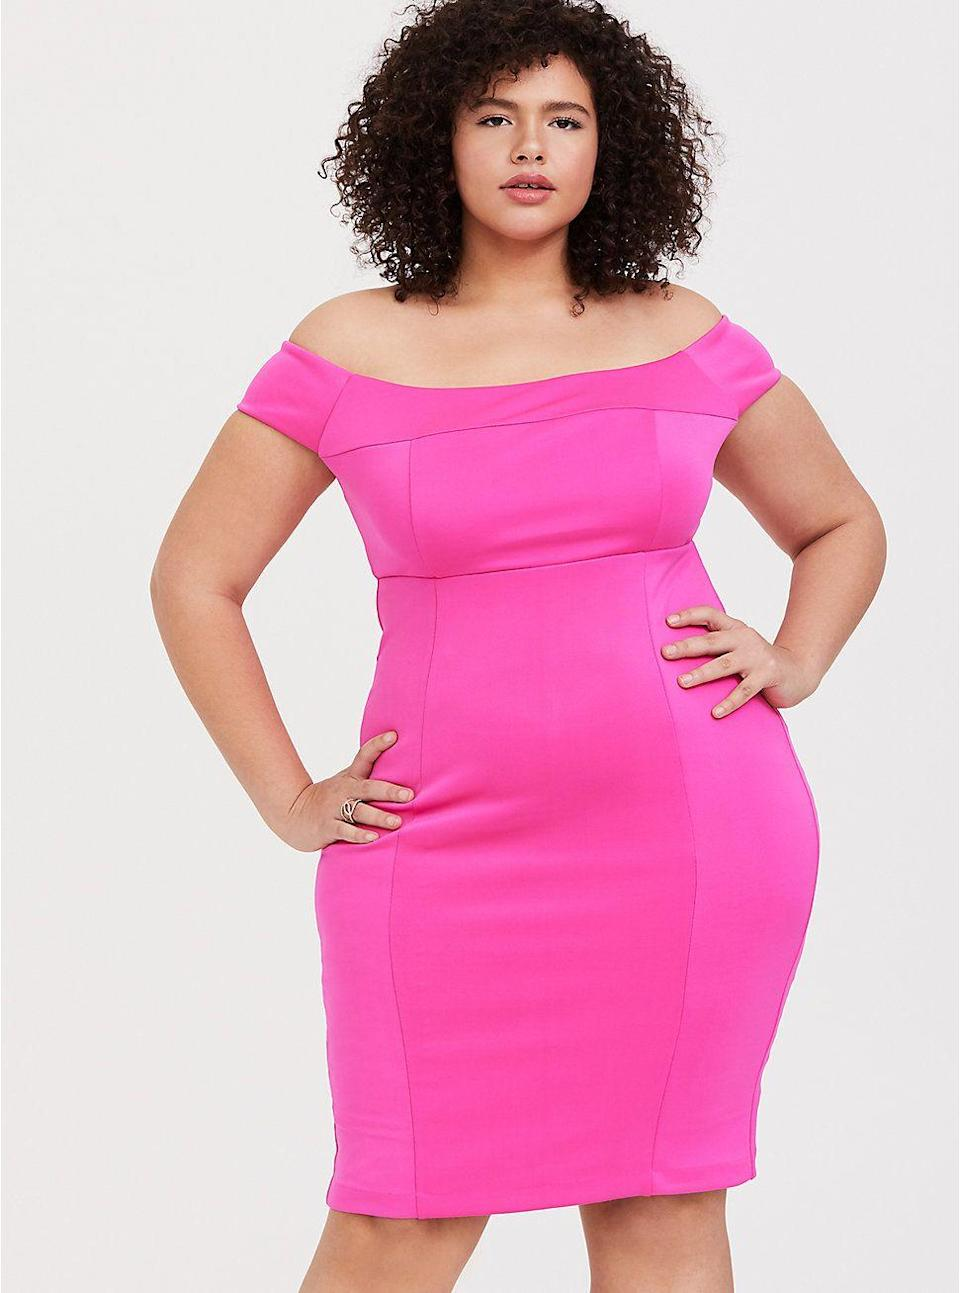 "<p><strong>Torrid</strong></p><p>torrid.com</p><p><strong>$27.99</strong></p><p><a href=""https://go.redirectingat.com?id=74968X1596630&url=https%3A%2F%2Fwww.torrid.com%2Fproduct%2Fhot-pink-scuba-knit-off-shoulder-bodycon-dress%2F12301060.html%3Fcgid%3DClothing_Dresses%23sz%3D60%26start%3D81&sref=https%3A%2F%2Fwww.goodhousekeeping.com%2Fholidays%2Fg29954145%2Fplus-size-new-years-dresses%2F"" rel=""nofollow noopener"" target=""_blank"" data-ylk=""slk:Shop Now"" class=""link rapid-noclick-resp"">Shop Now</a></p><p>Go bold on New Year's Eve by skipping the traditional glittery look and opting for hot pink. The stretchy fabric allows for comfort while highlighting your figure. </p>"